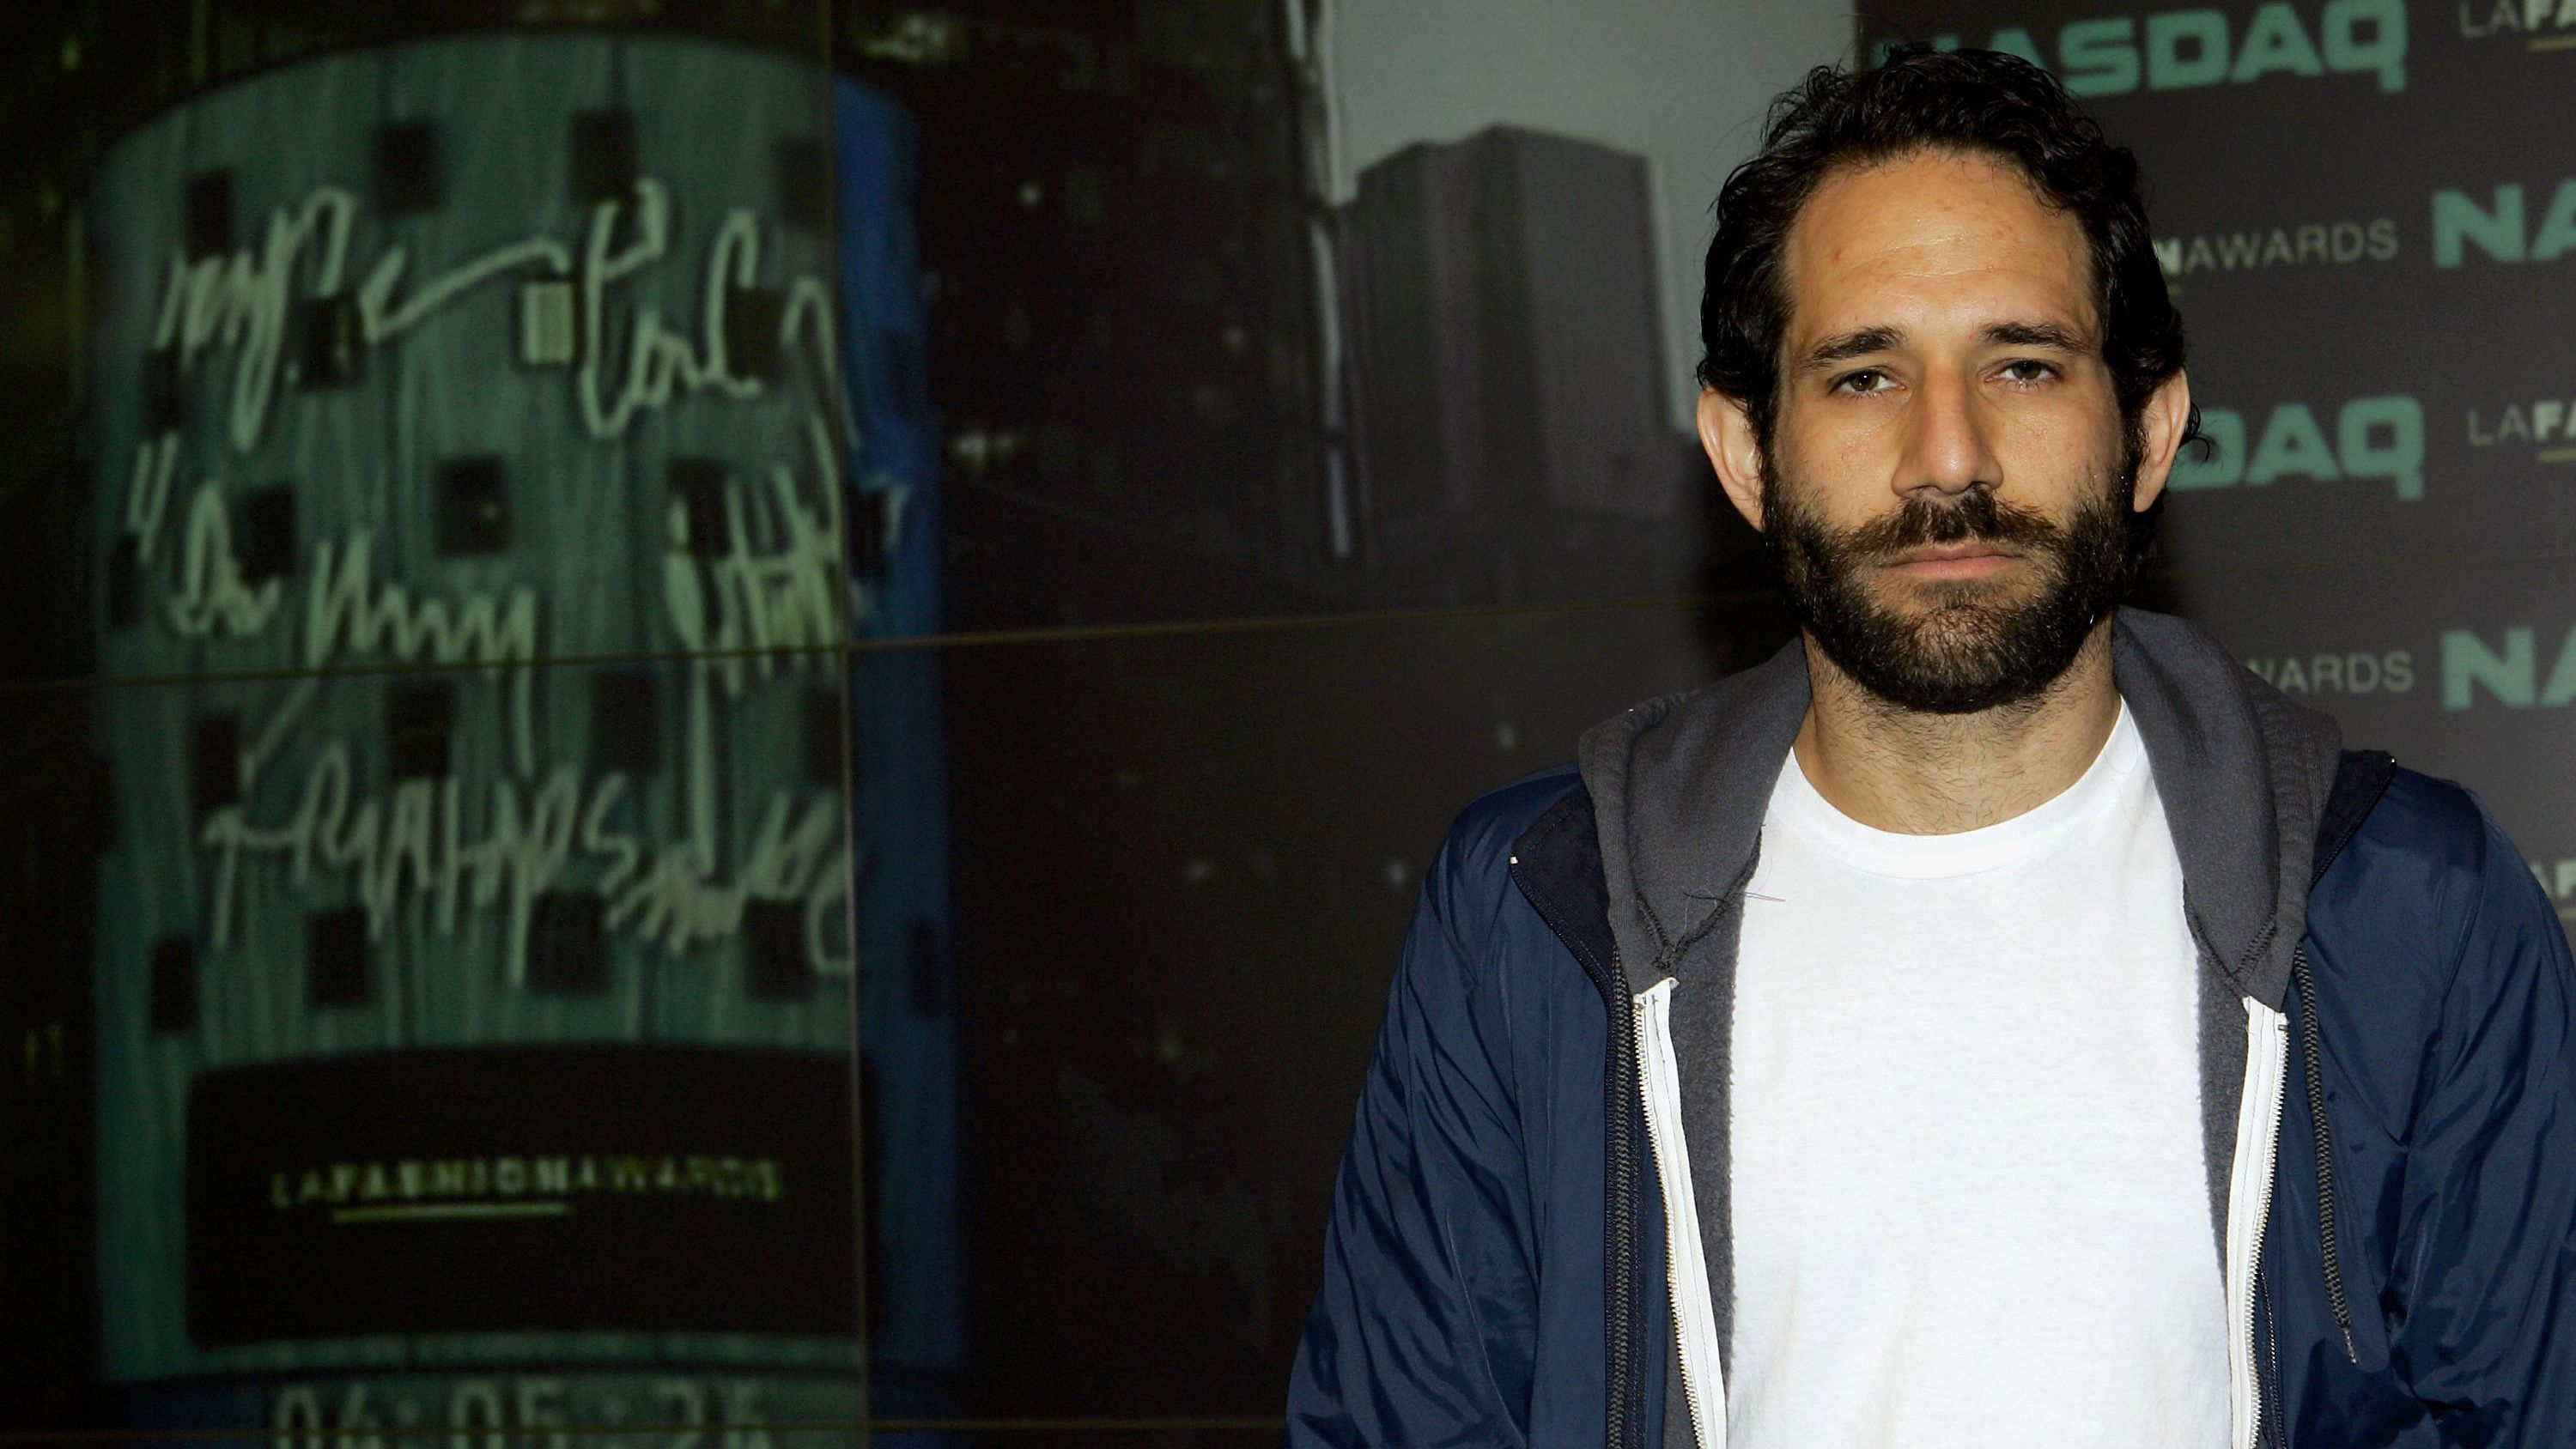 Dov Charney poses at The NASDAQ Stock Market in Times Square to ring the closing bell on September 15, 2006 in New York City.